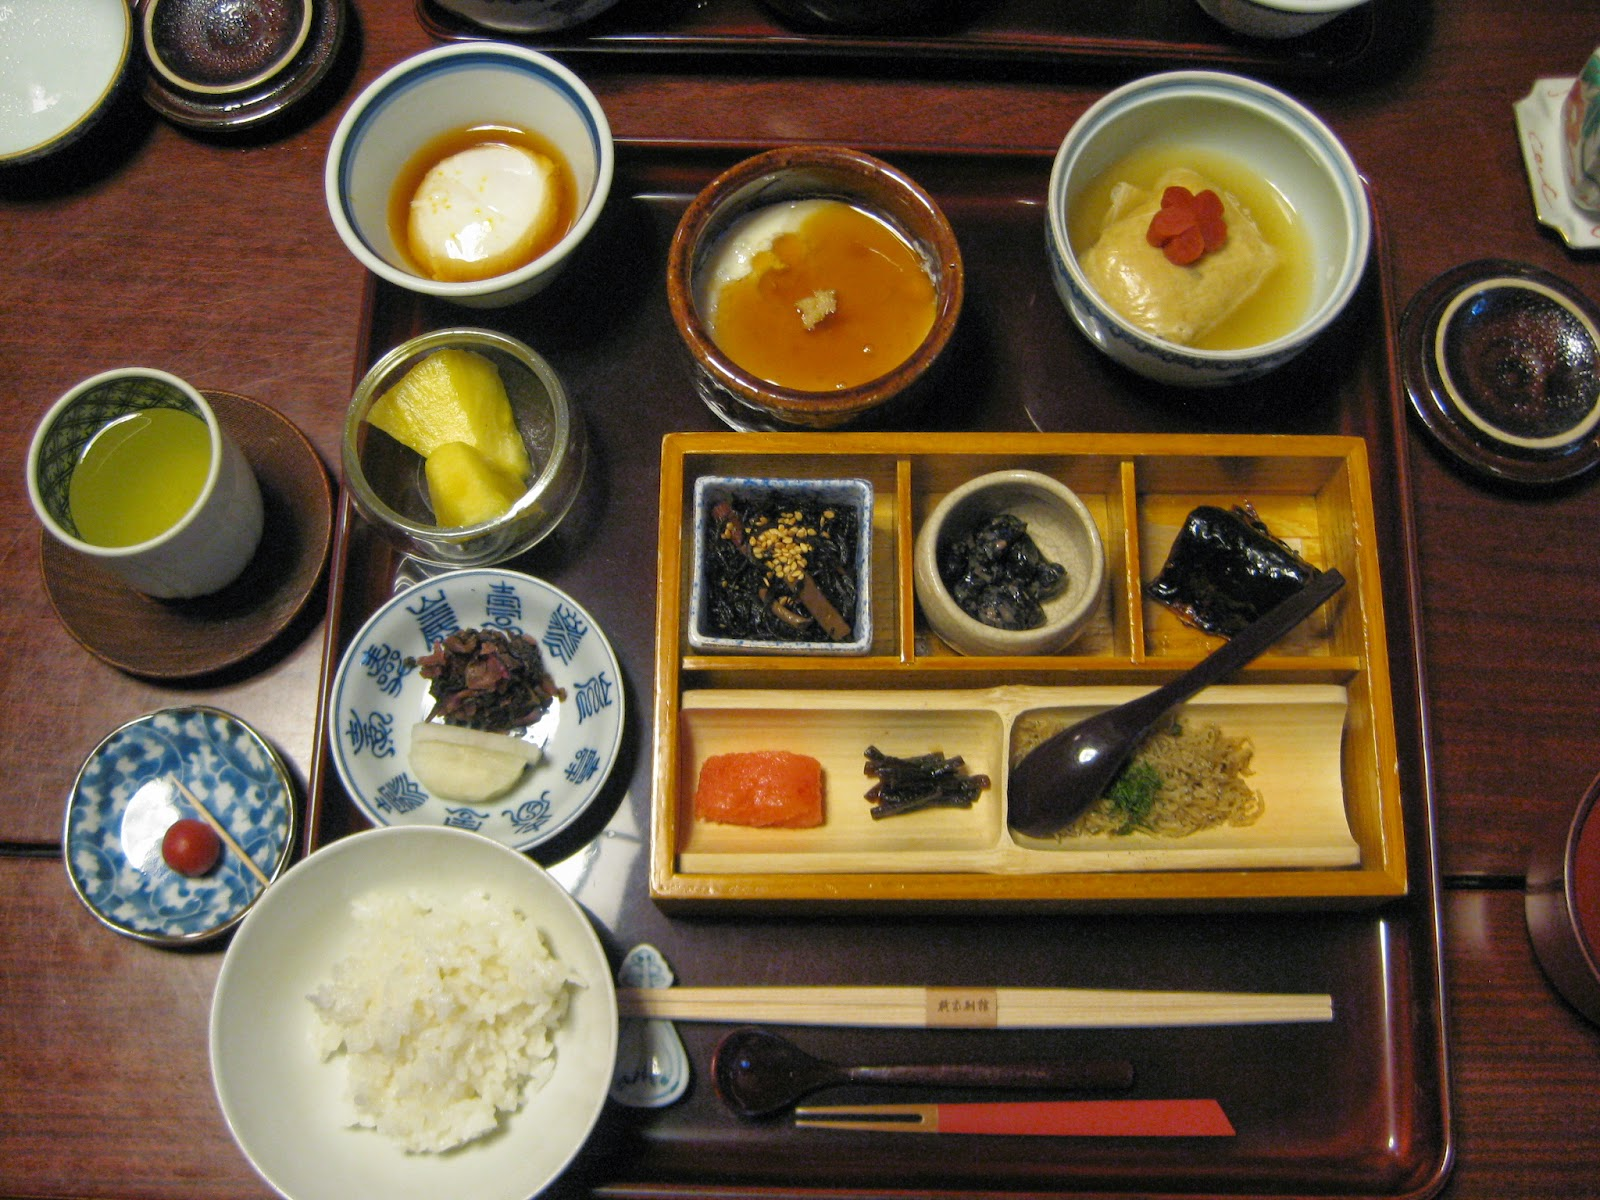 Kyoto - Breakfast of various small dishes